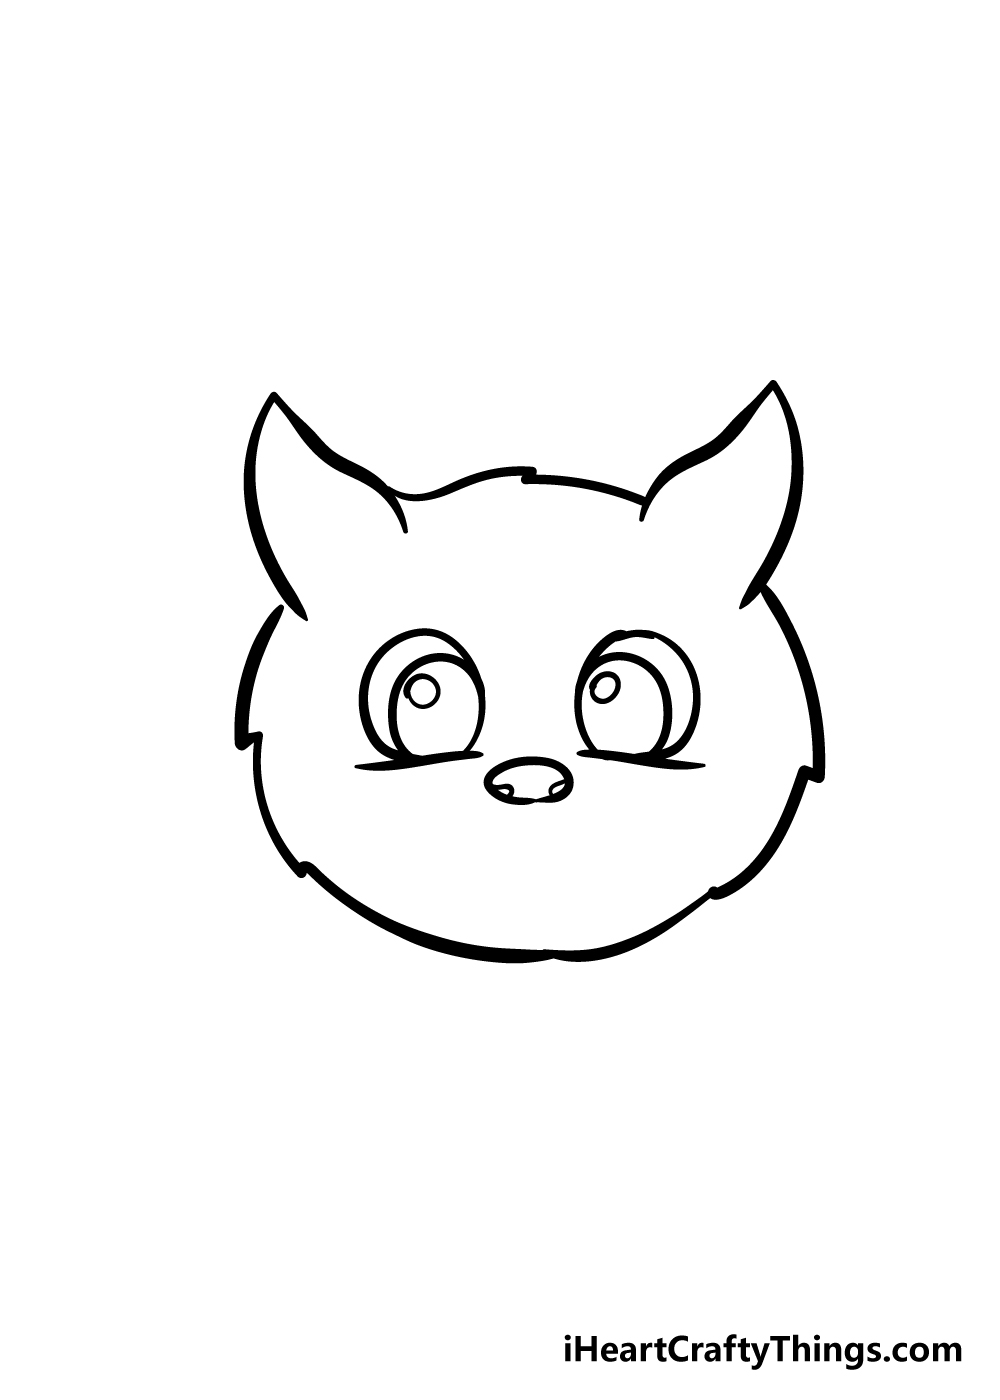 cat face drawing step 5